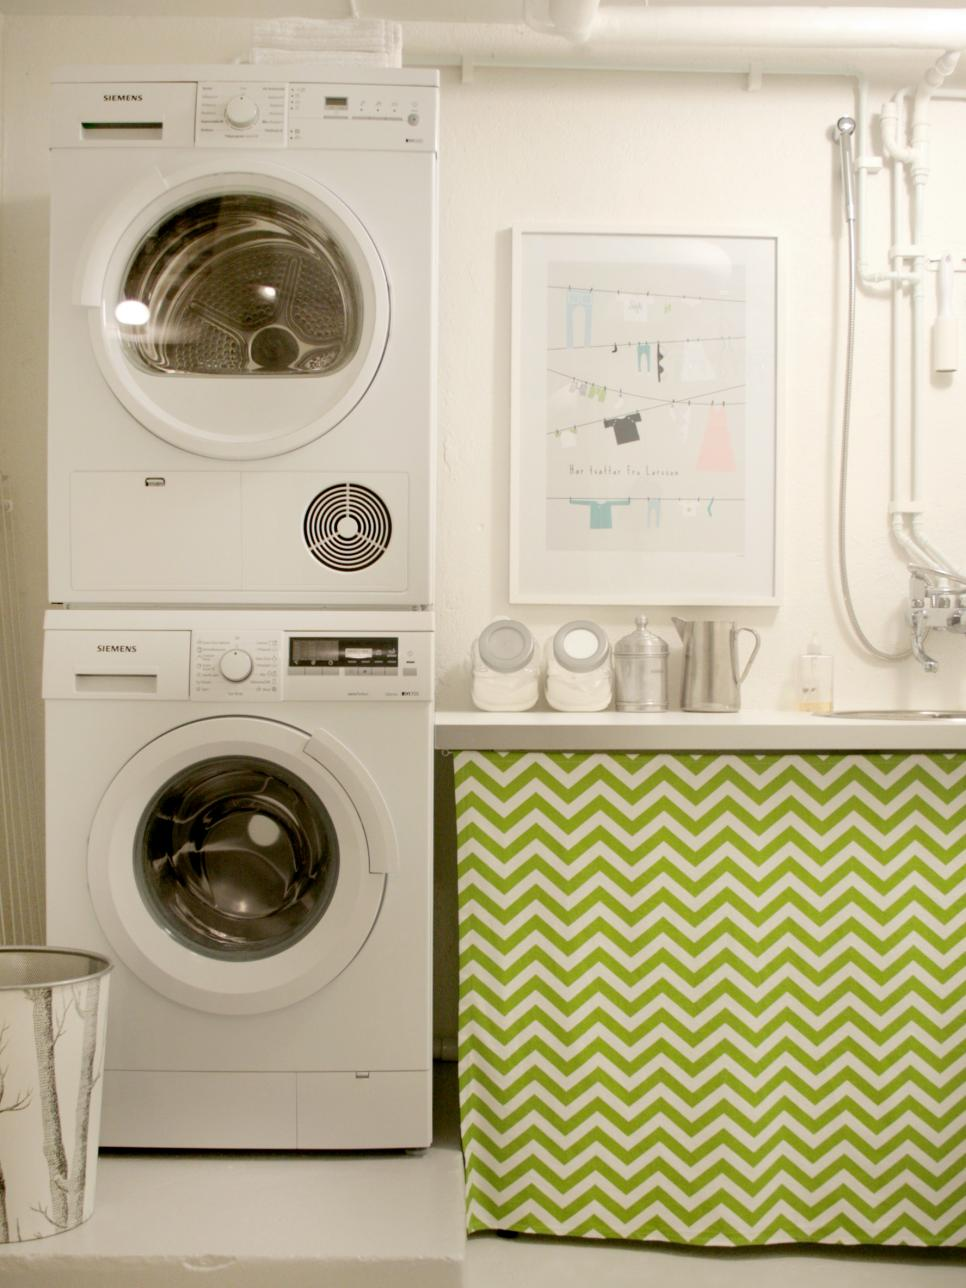 Chic Laundry Room Decorating Ideas HGTV - Bathroom laundry room design ideas